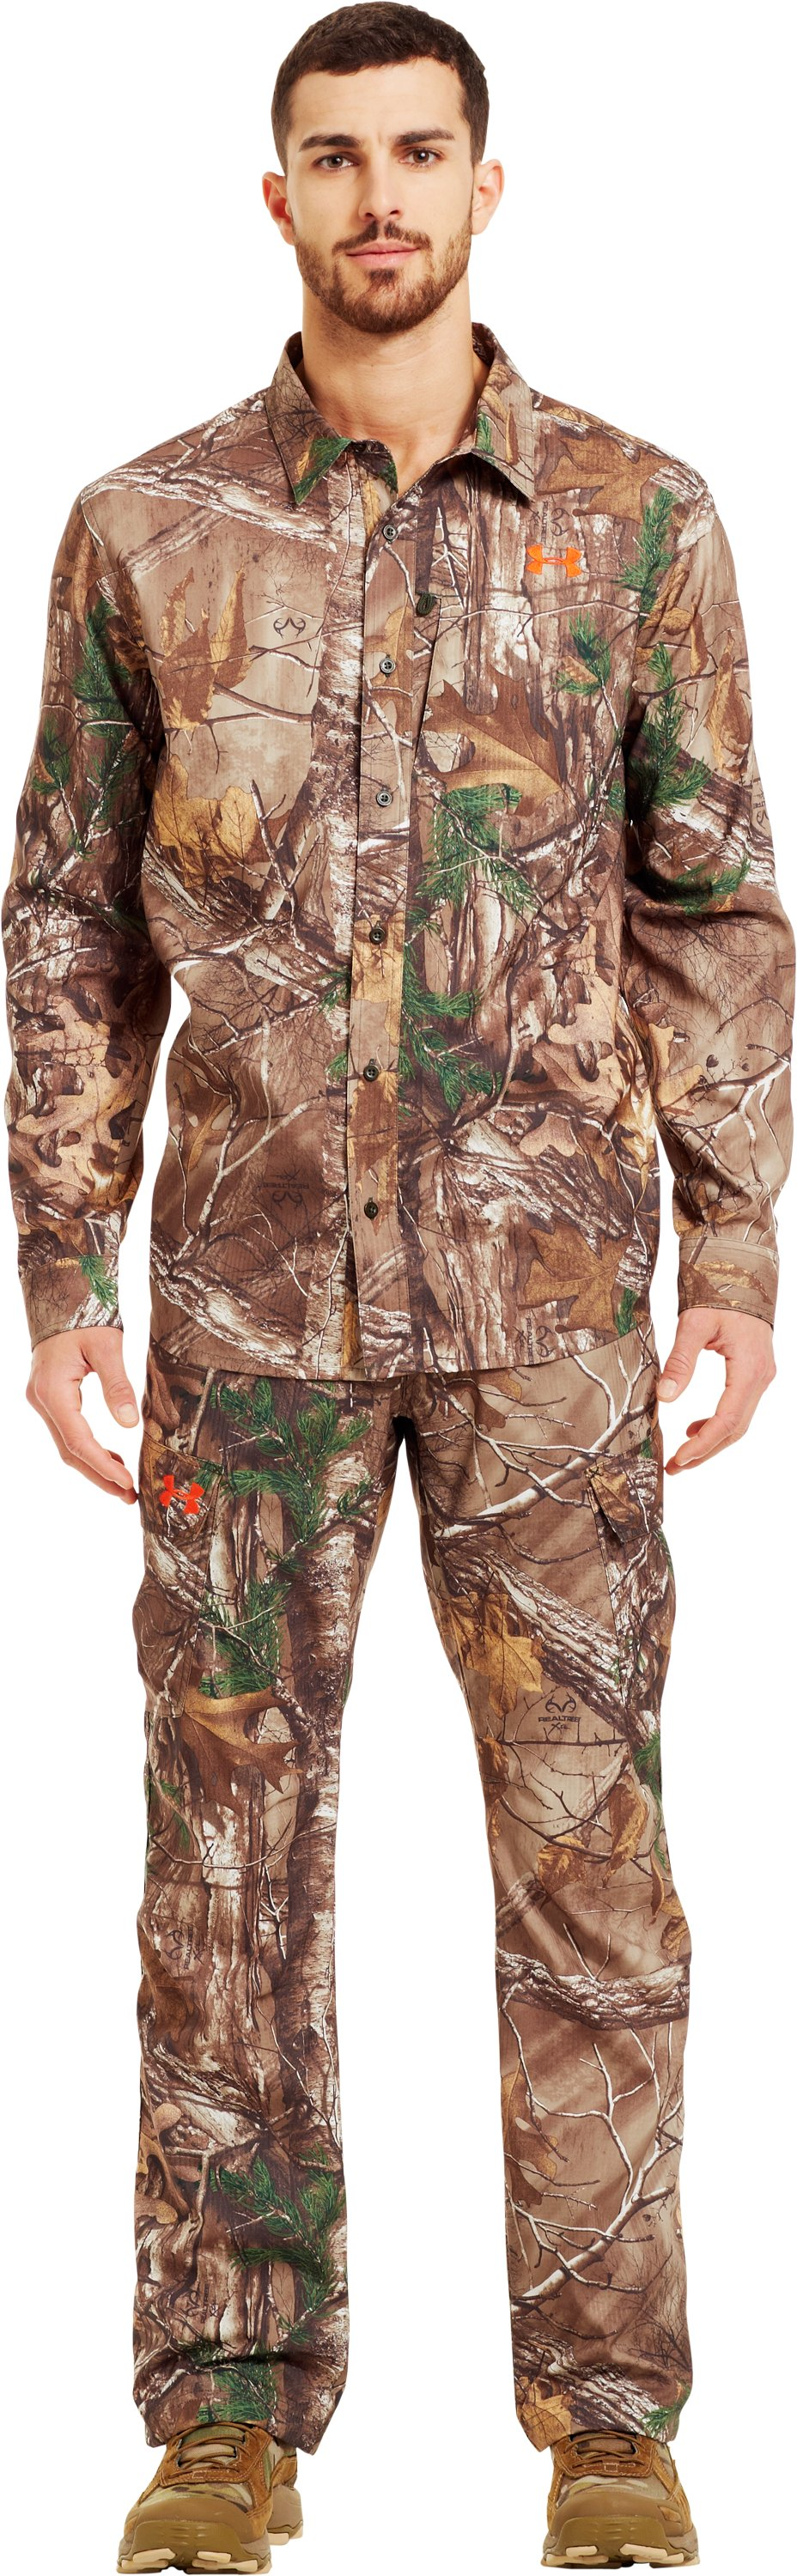 Men's UA Performance Field Shirt, REALTREE AP-XTRA